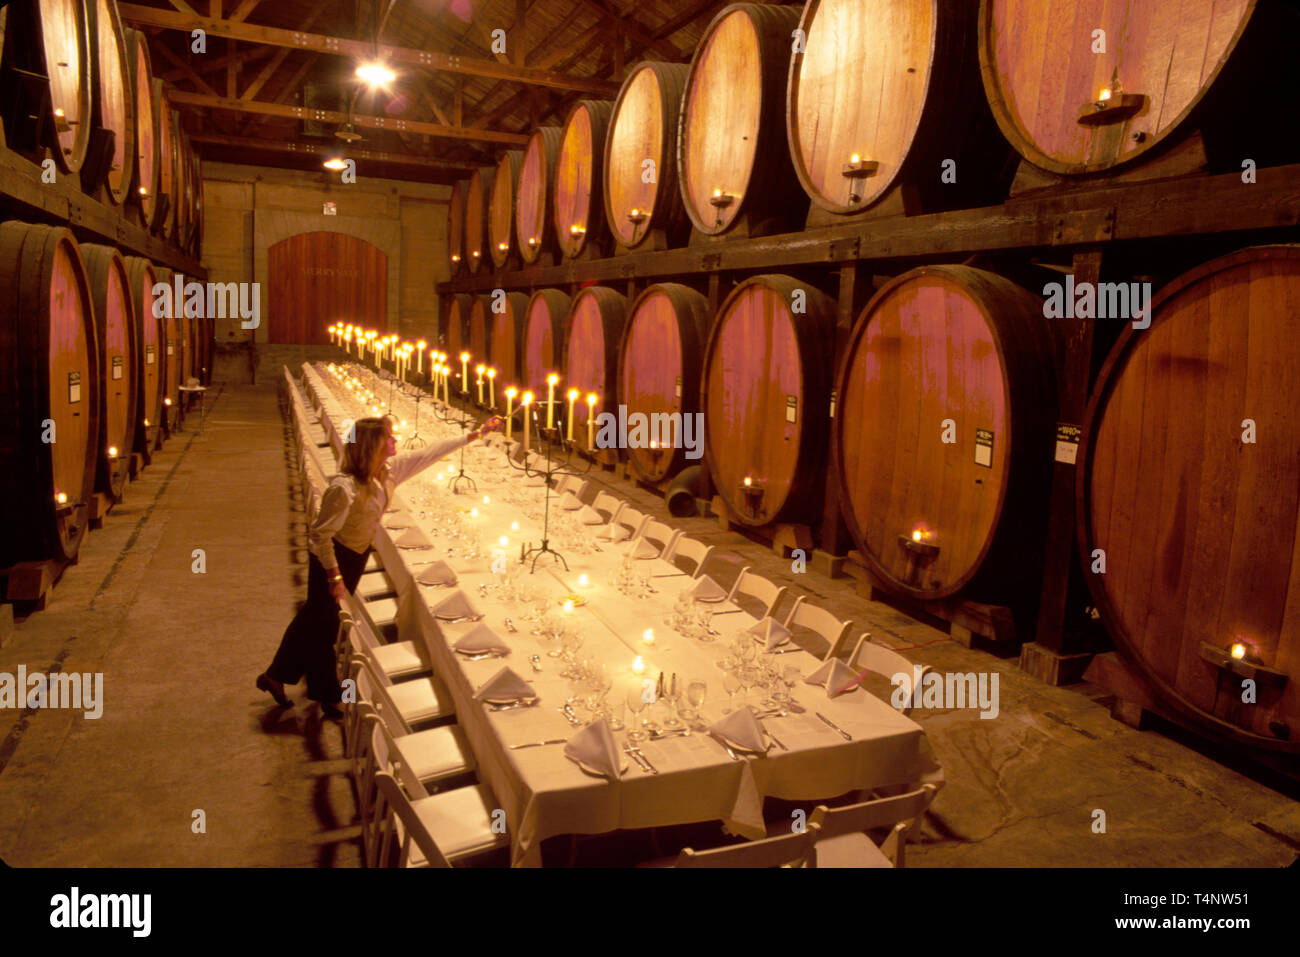 California Napa Valley St. Helena Maryvale Vineyards Cask Room candlelight banquet wine growing region - Stock Image